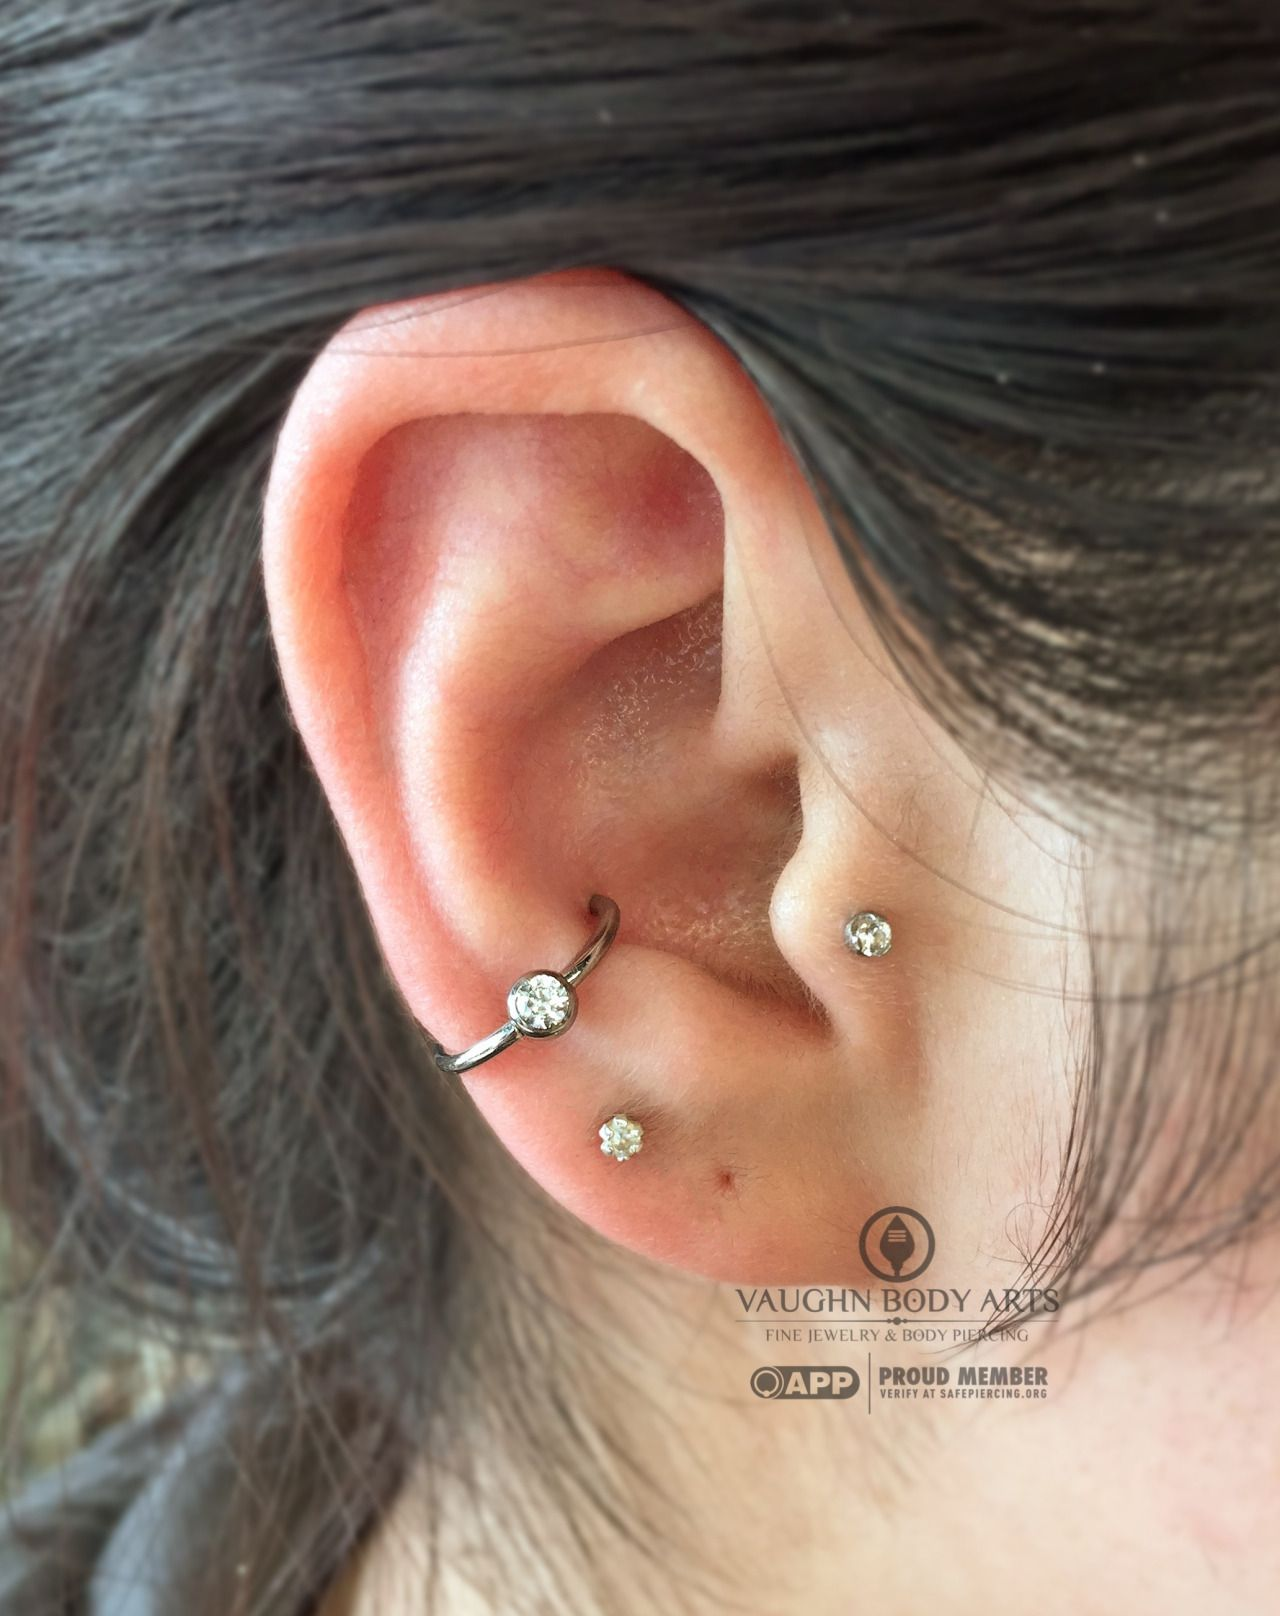 Ariana Stopped In For A Conch And Tragus Piercing To Match Her Other Conch  And Tragus